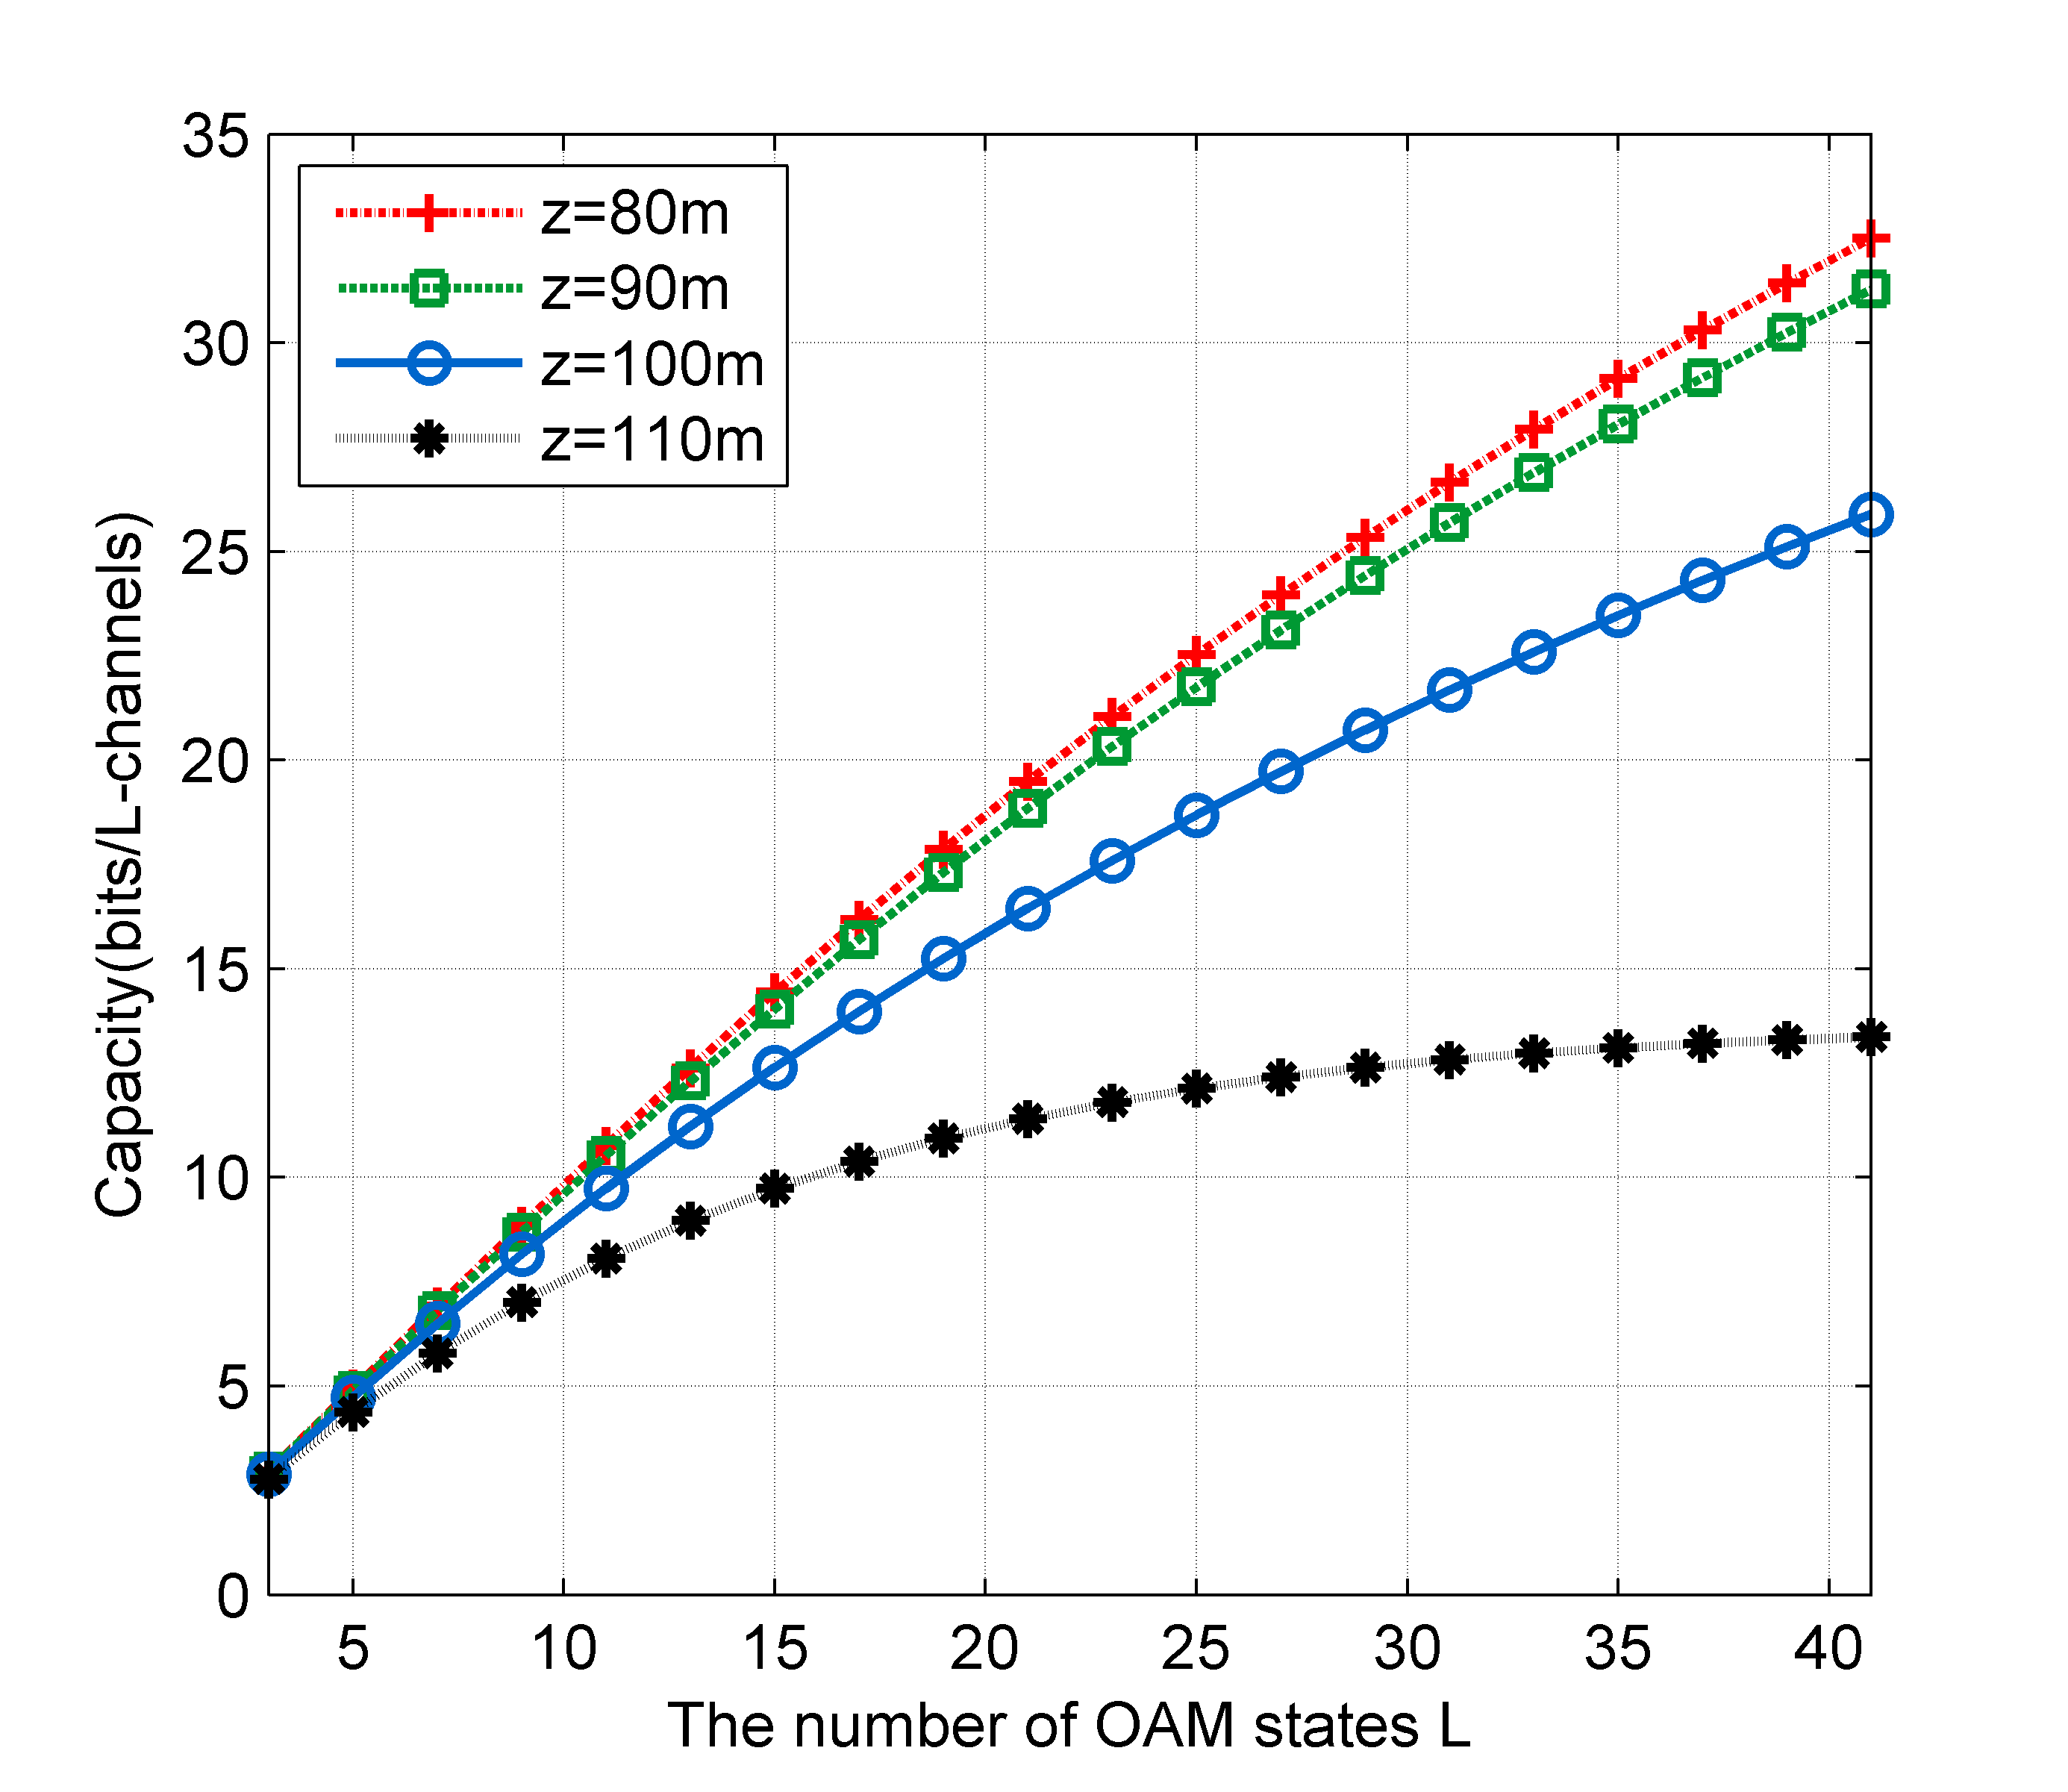 Impact of the number of OAM states on the capacity of OAM-mmWave communication systems with different propagation distances.